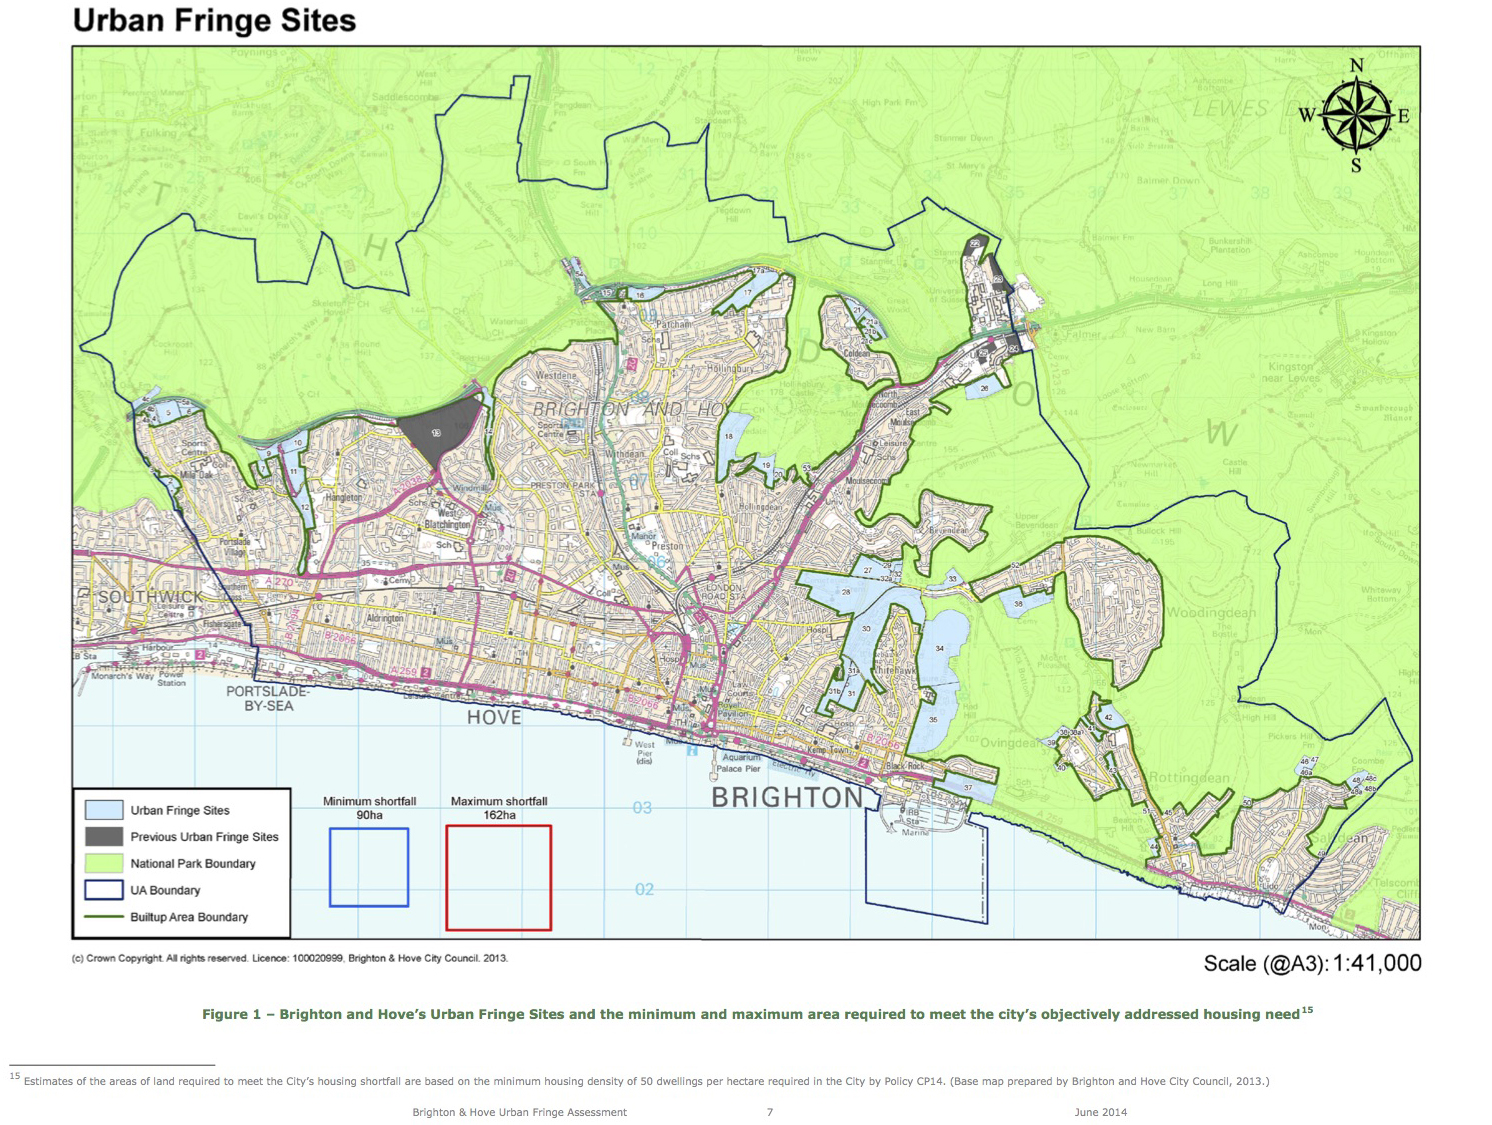 BHCC Urban Fringe Assessment 2014